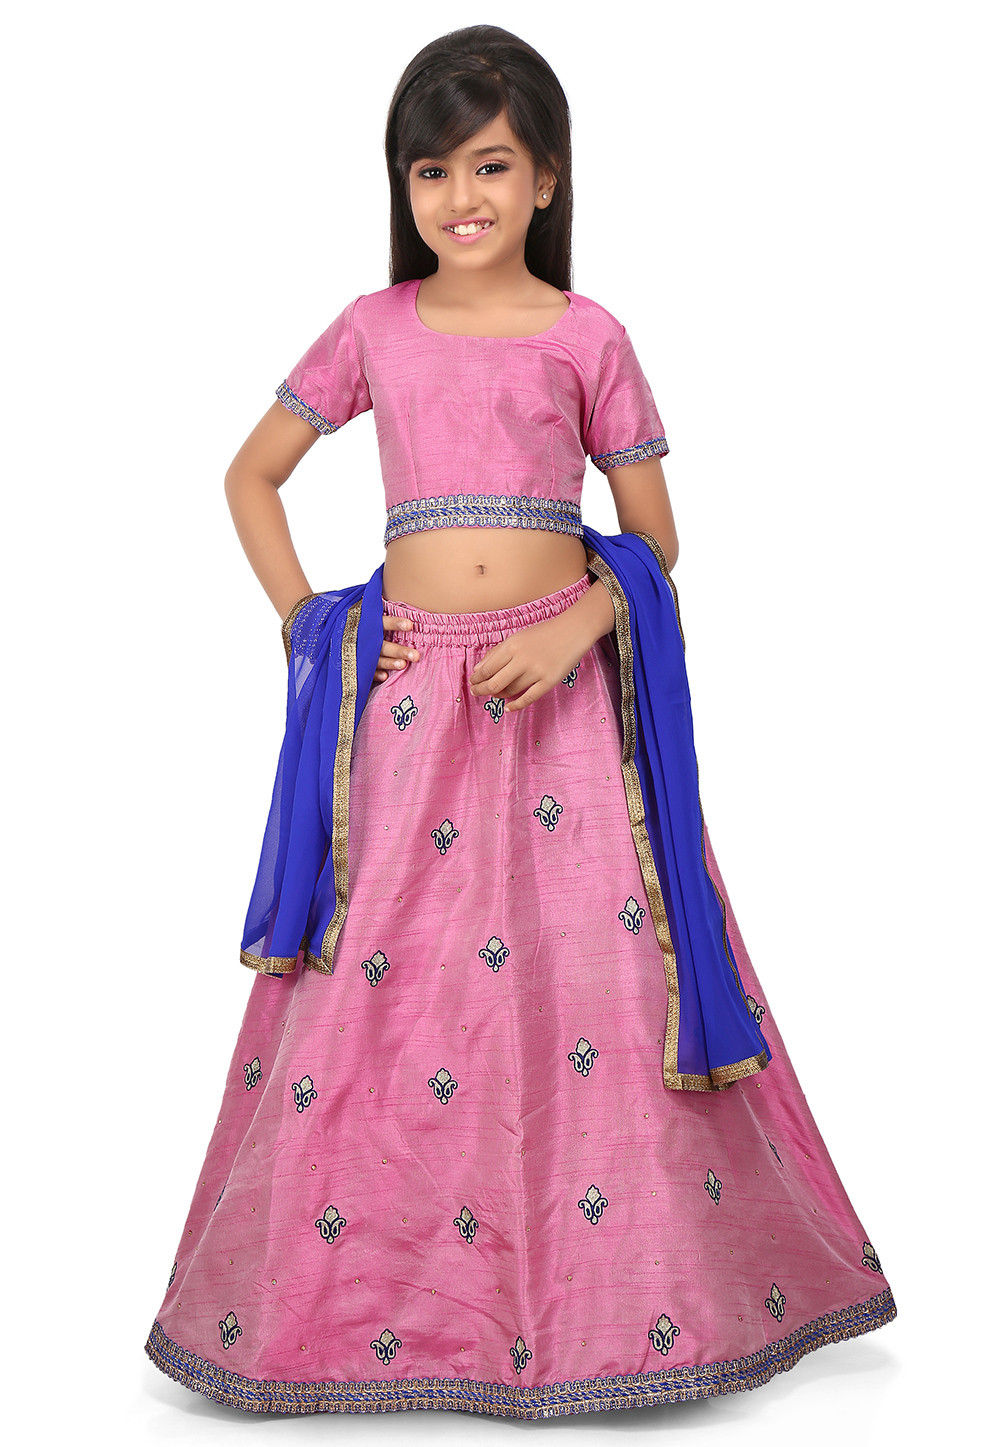 Embroidered Art Dupion Silk Lehenga in Light Pink